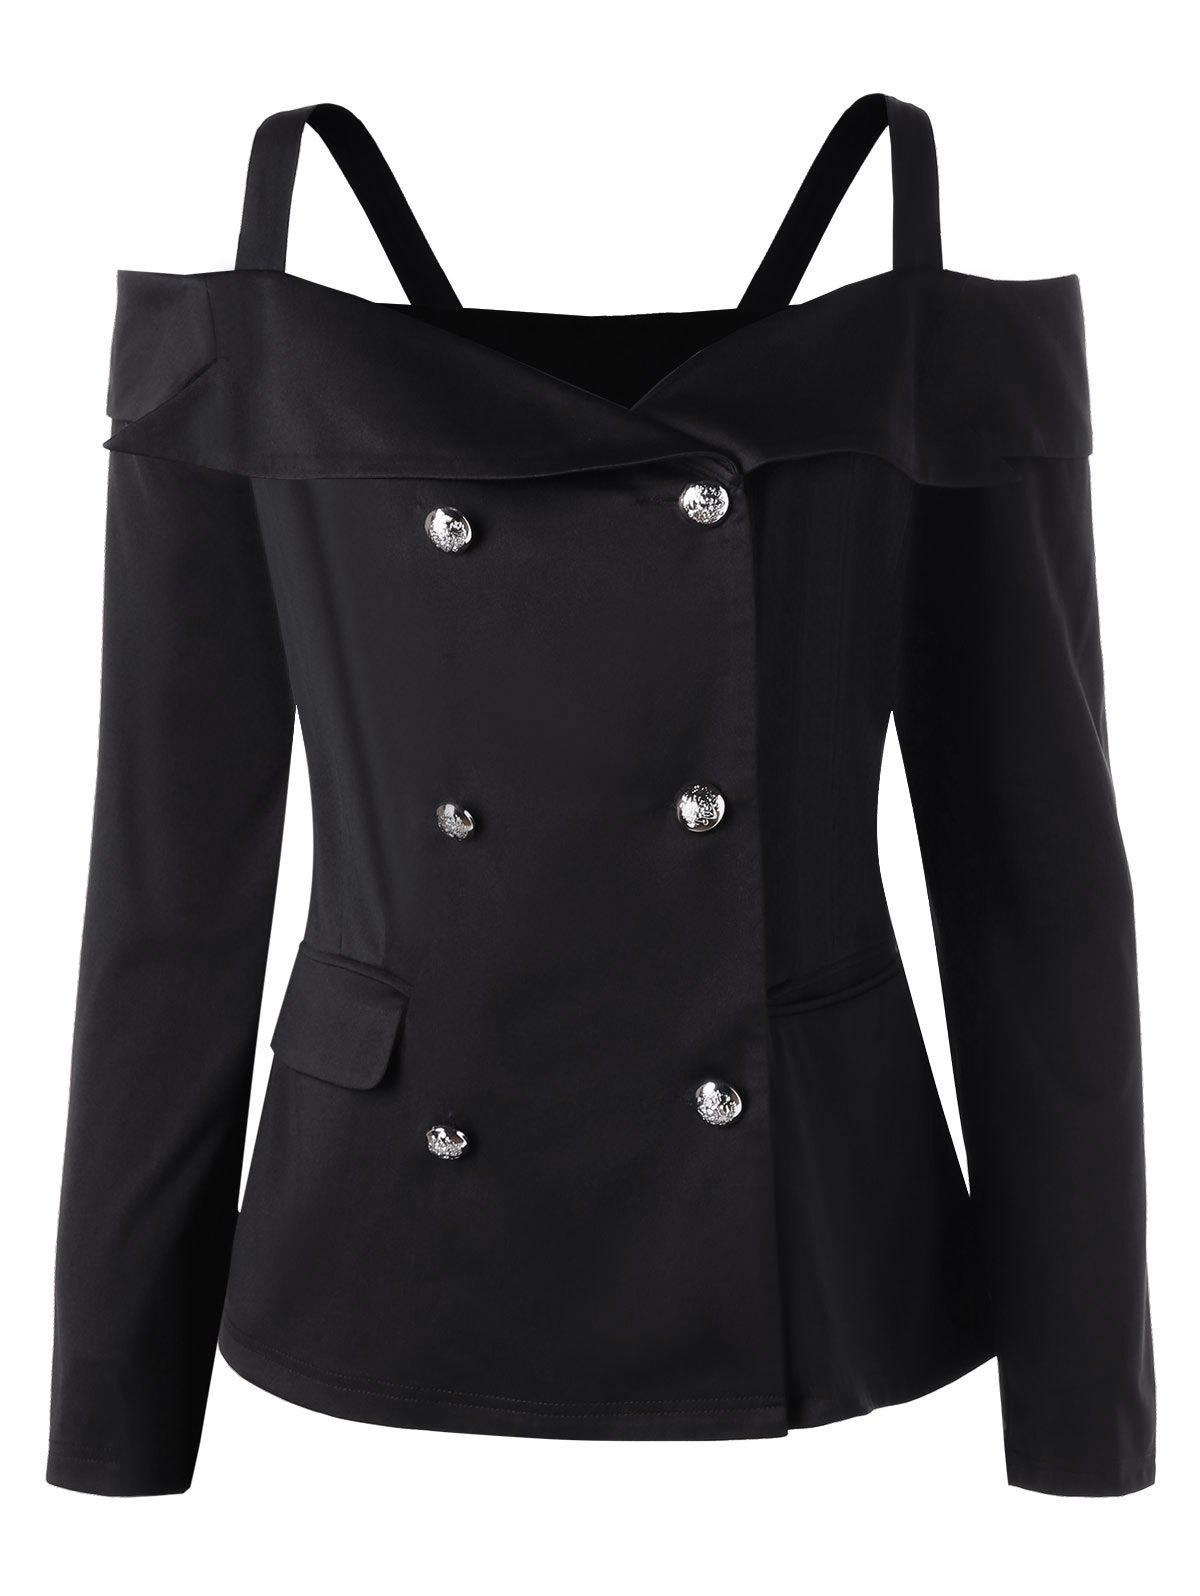 Plus Size Long Sleeve Double Breasted Cold Shoulder TopWOMEN<br><br>Size: 5XL; Color: BLACK; Clothes Type: Jackets; Material: Cotton,Polyester; Type: Slim; Shirt Length: Short; Sleeve Length: Full; Collar: Spaghetti Strap; Closure Type: Double Breasted; Pattern Type: Solid; Style: Fashion; Season: Fall,Spring; With Belt: No; Weight: 0.4000kg; Package Contents: 1 x Top;